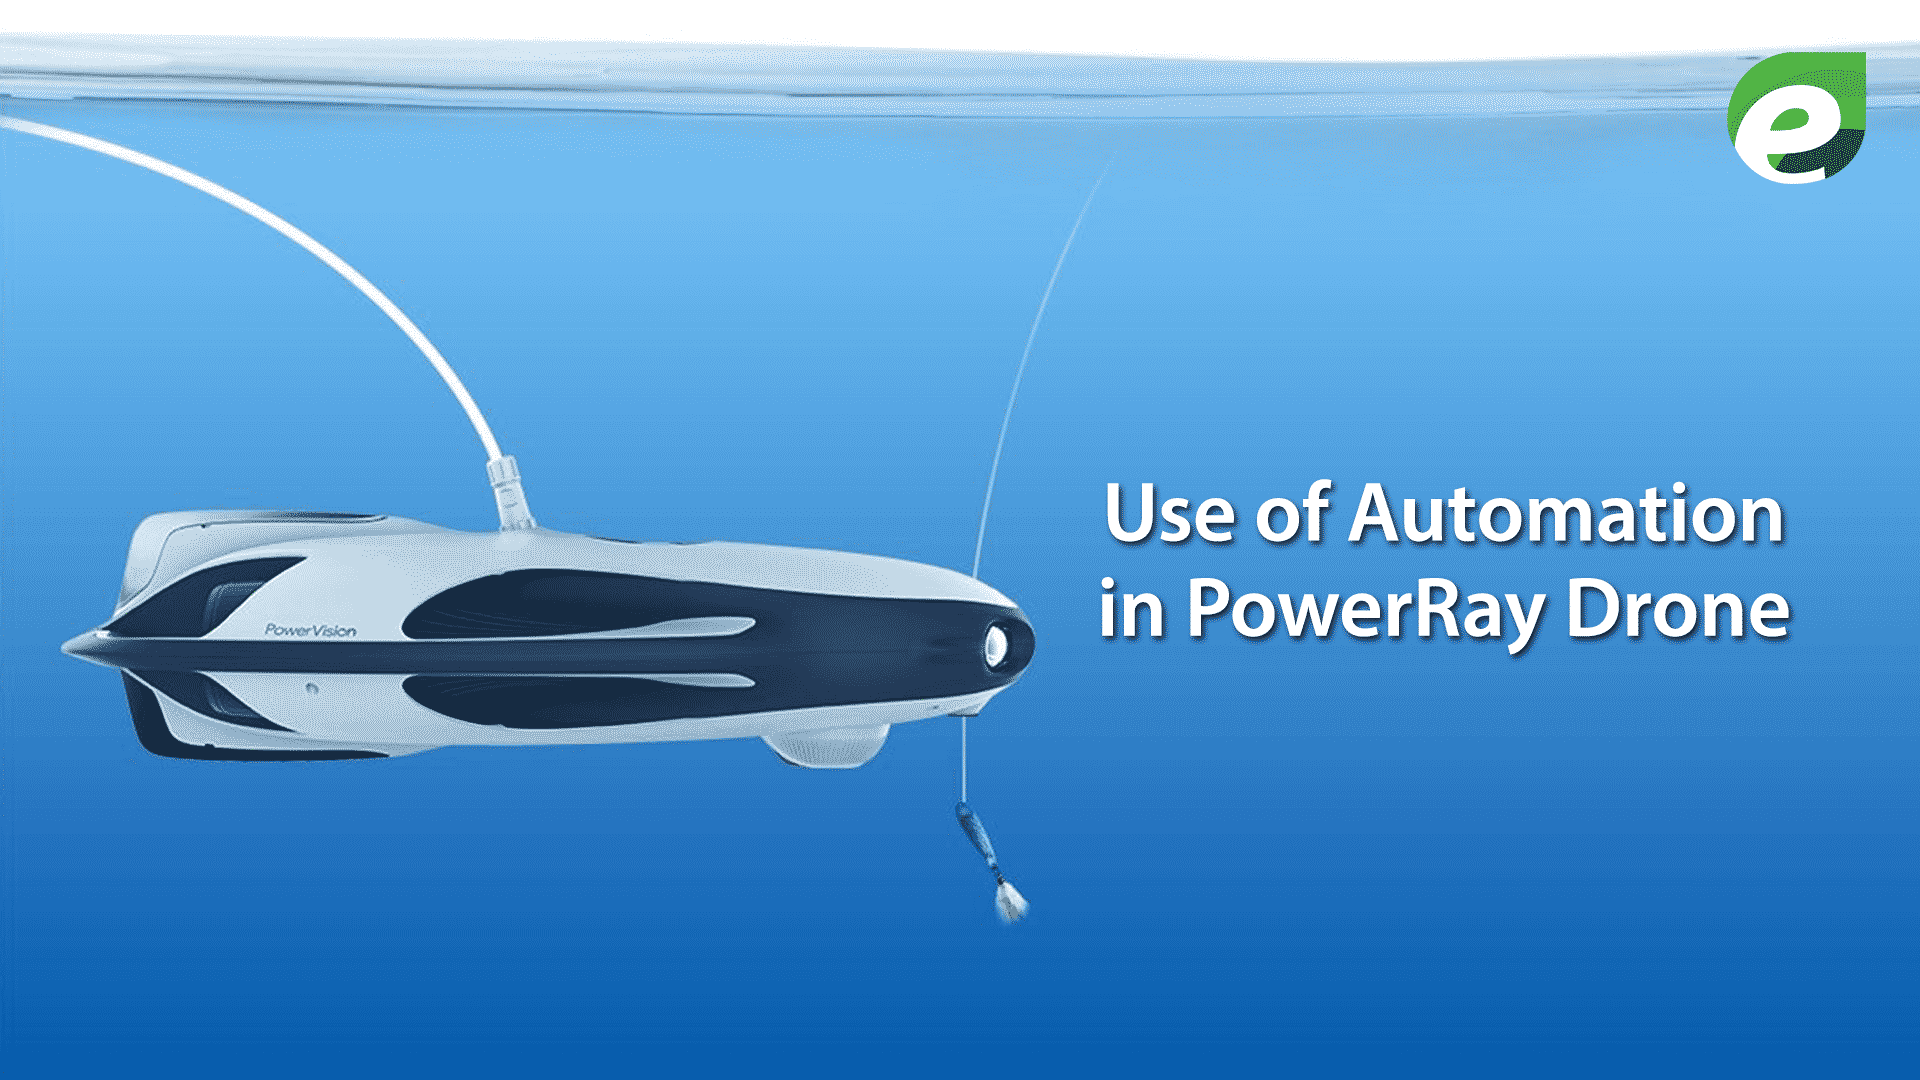 PowerRay drone- use of automation